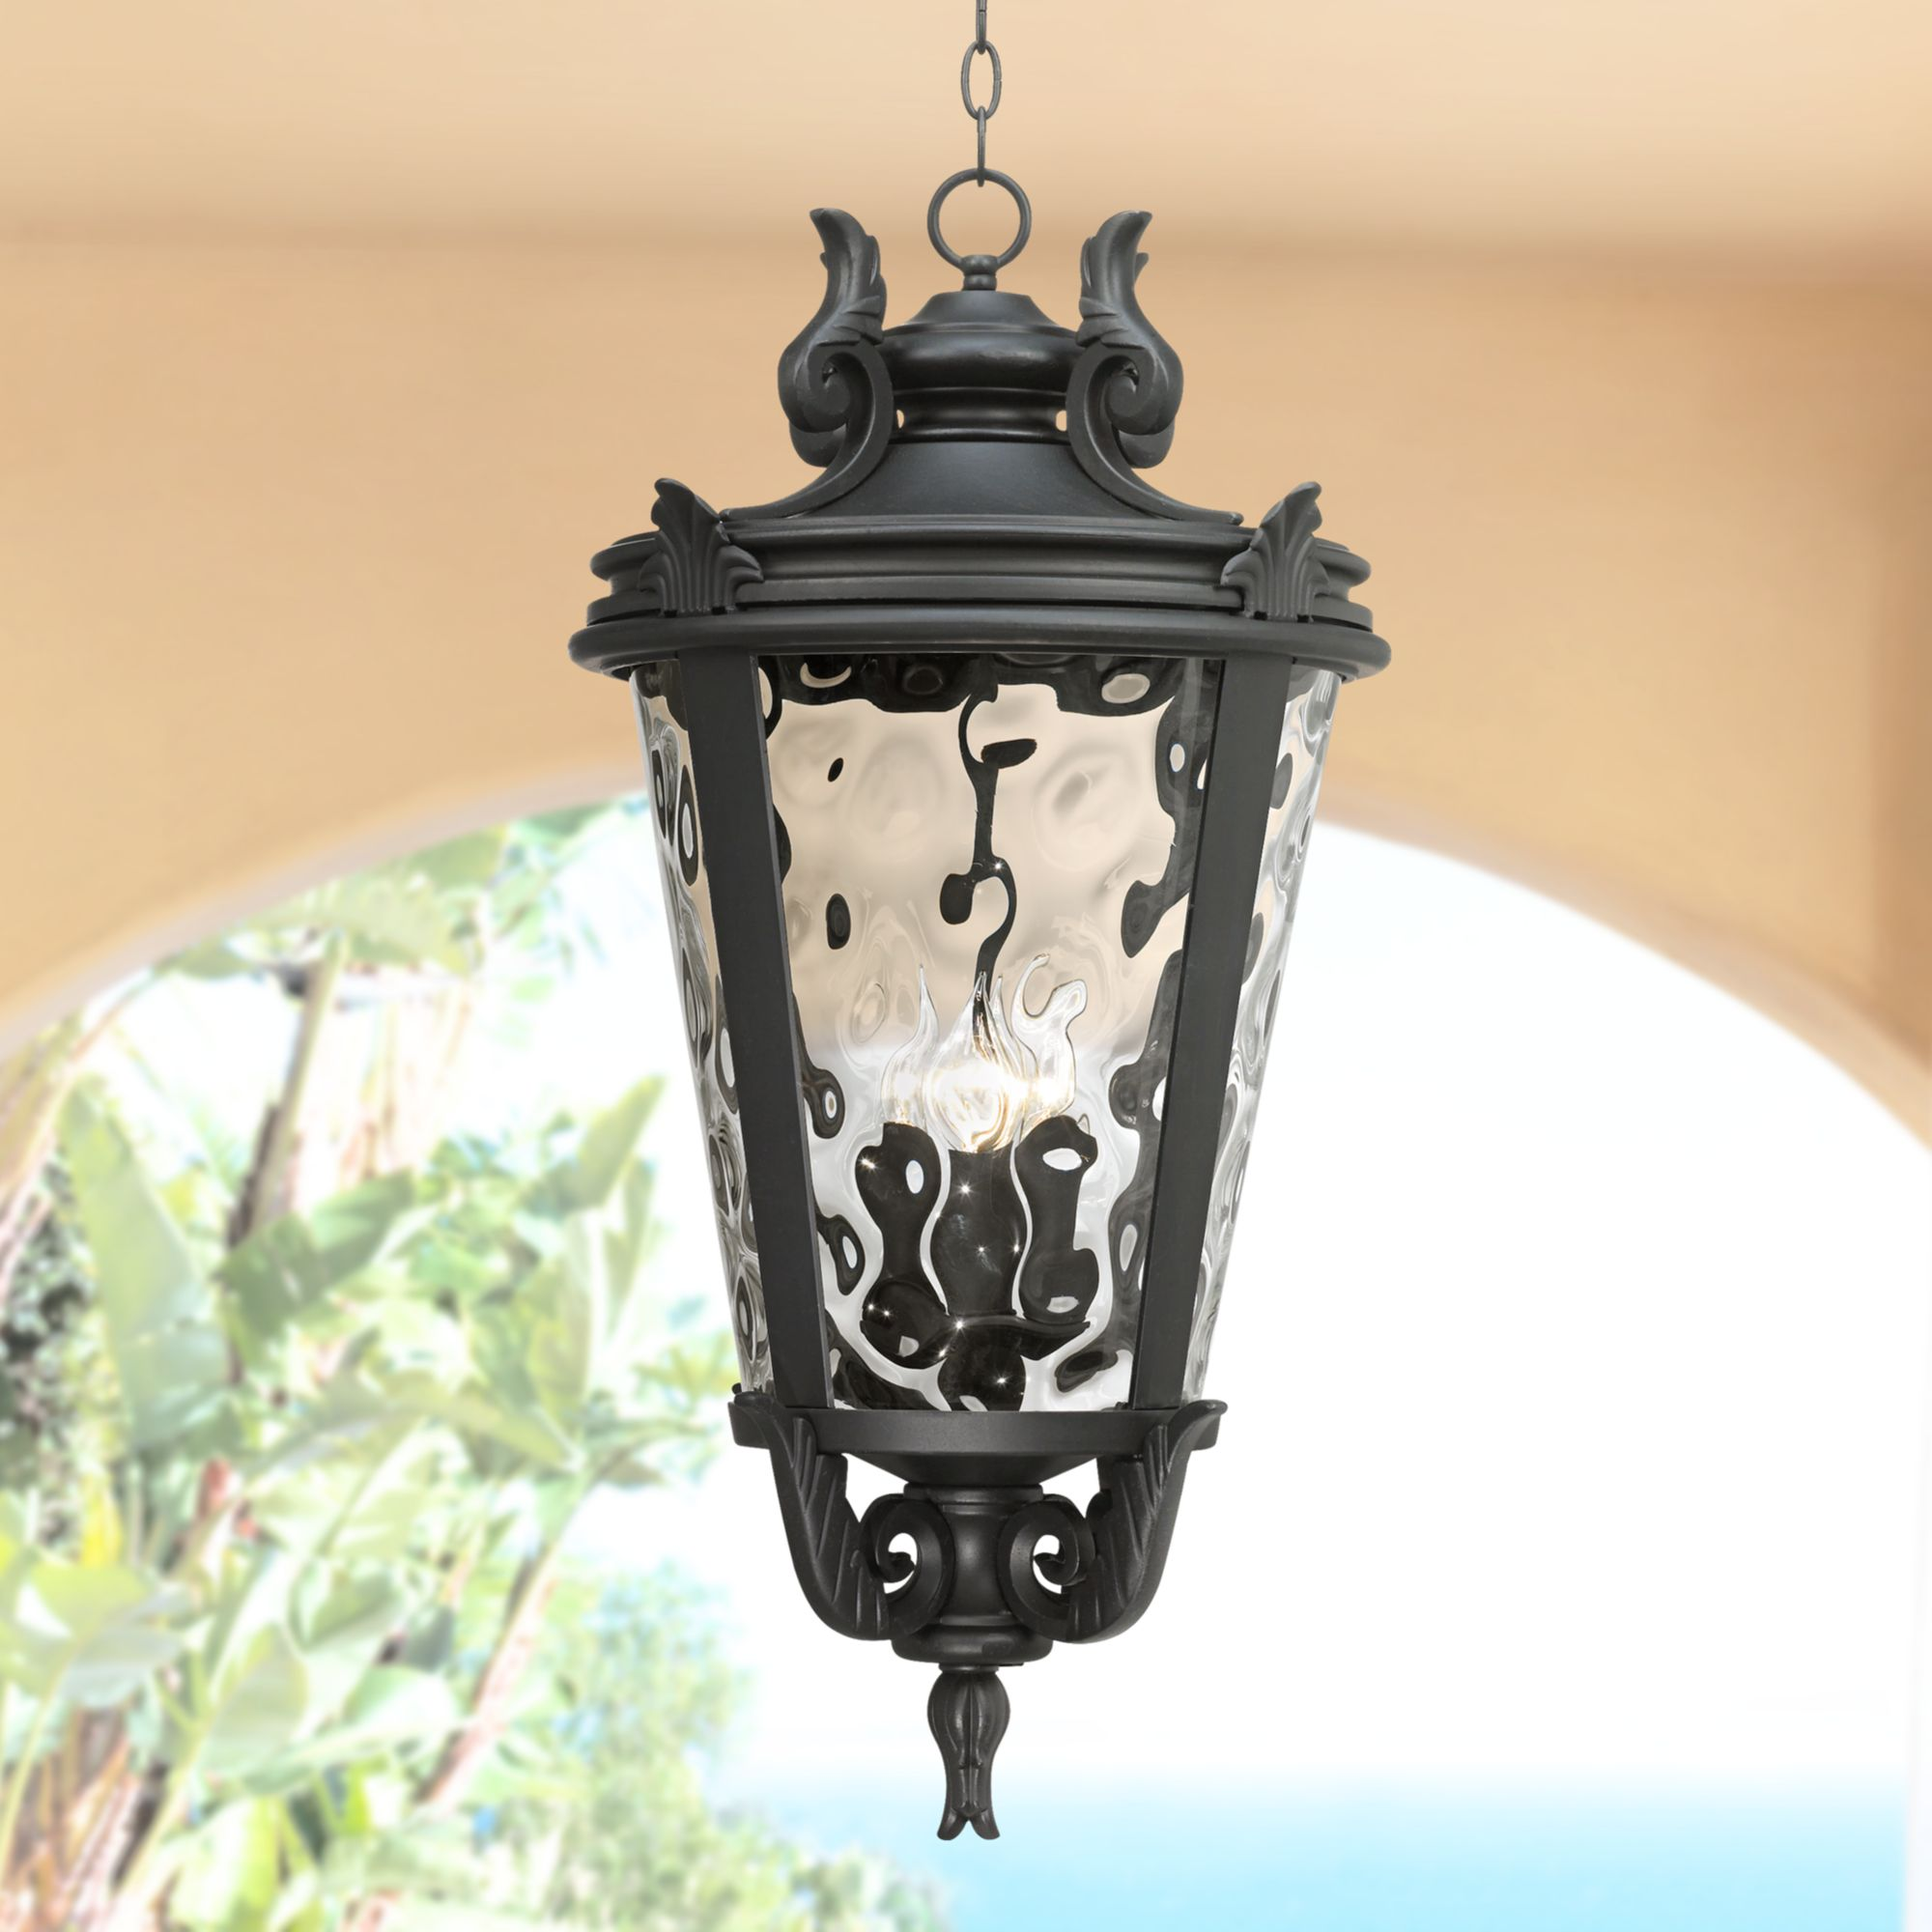 john timberland traditional outdoor light hanging textured black scroll 30 clear hammered glass damp rated for porch patio walmart com